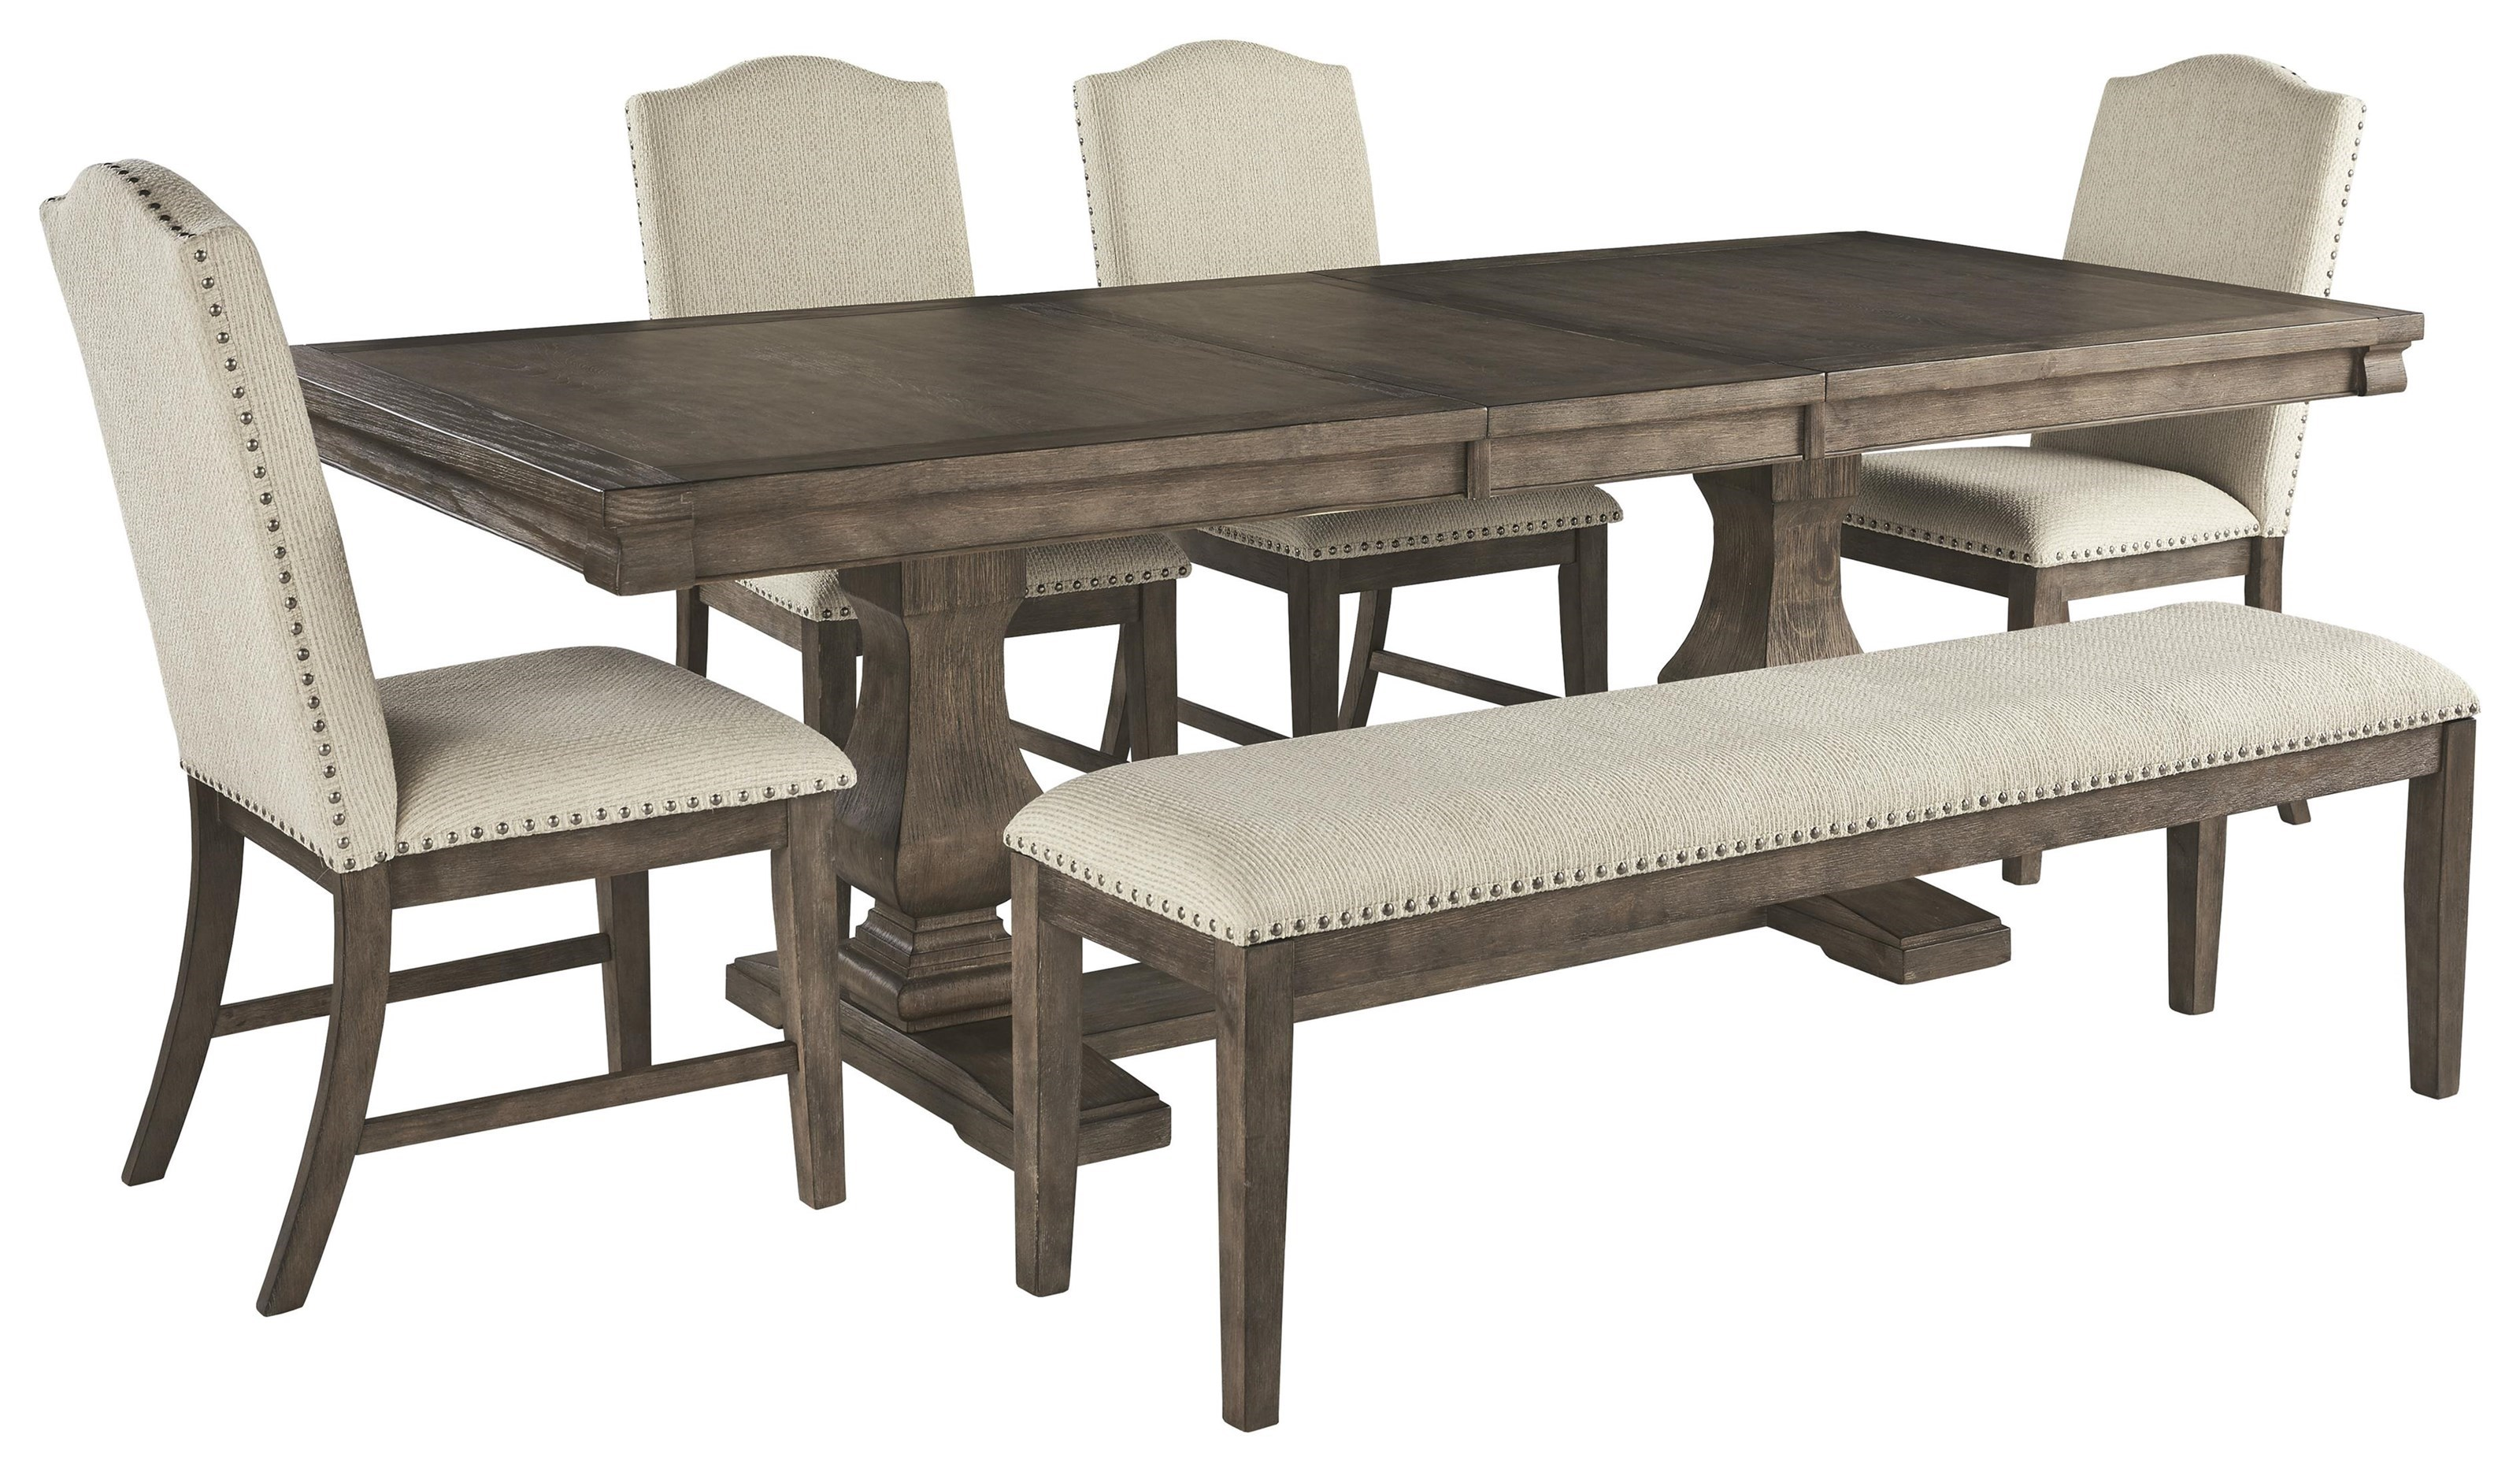 Picture of: Millennium Johnelle D776 55t 55b 4×01 00 6 Piece Rectangular Dining Room Extension Table 4 Upholstered Side Chairs And Upholstered Bench Set Sam Levitz Furniture Table Chair Set With Bench